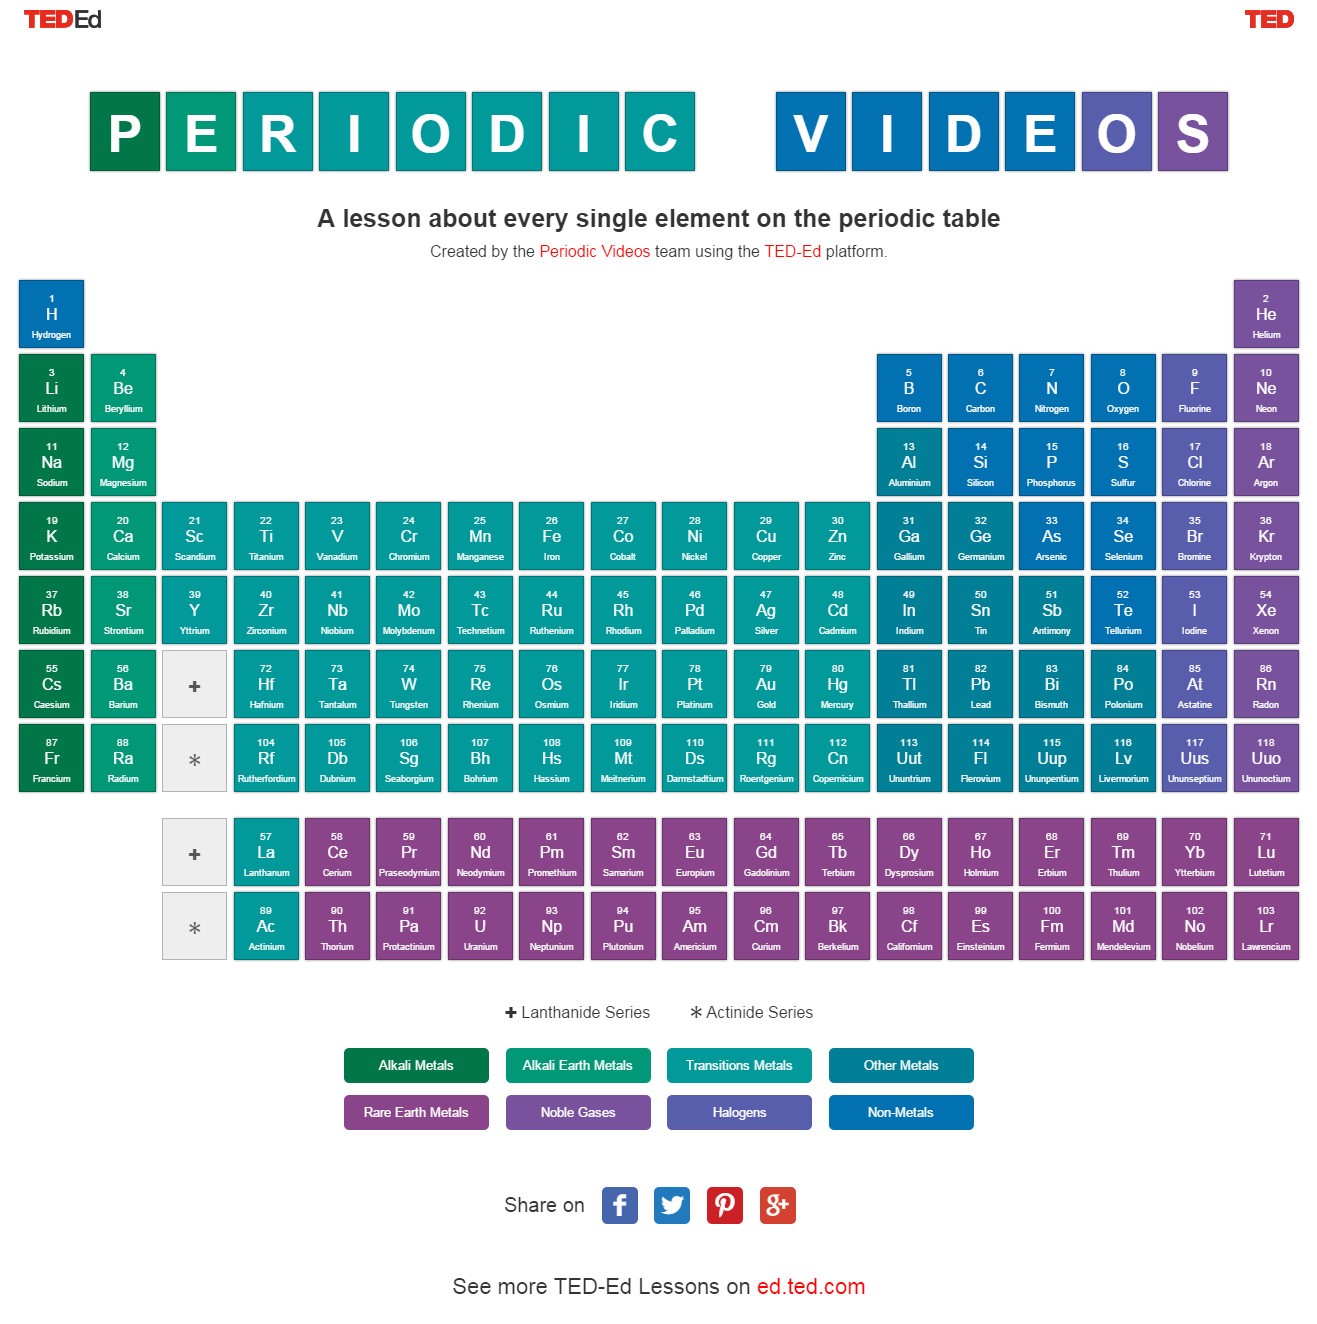 For your chemists interactive periodic table link ted ed and periodic videos gamestrikefo Images